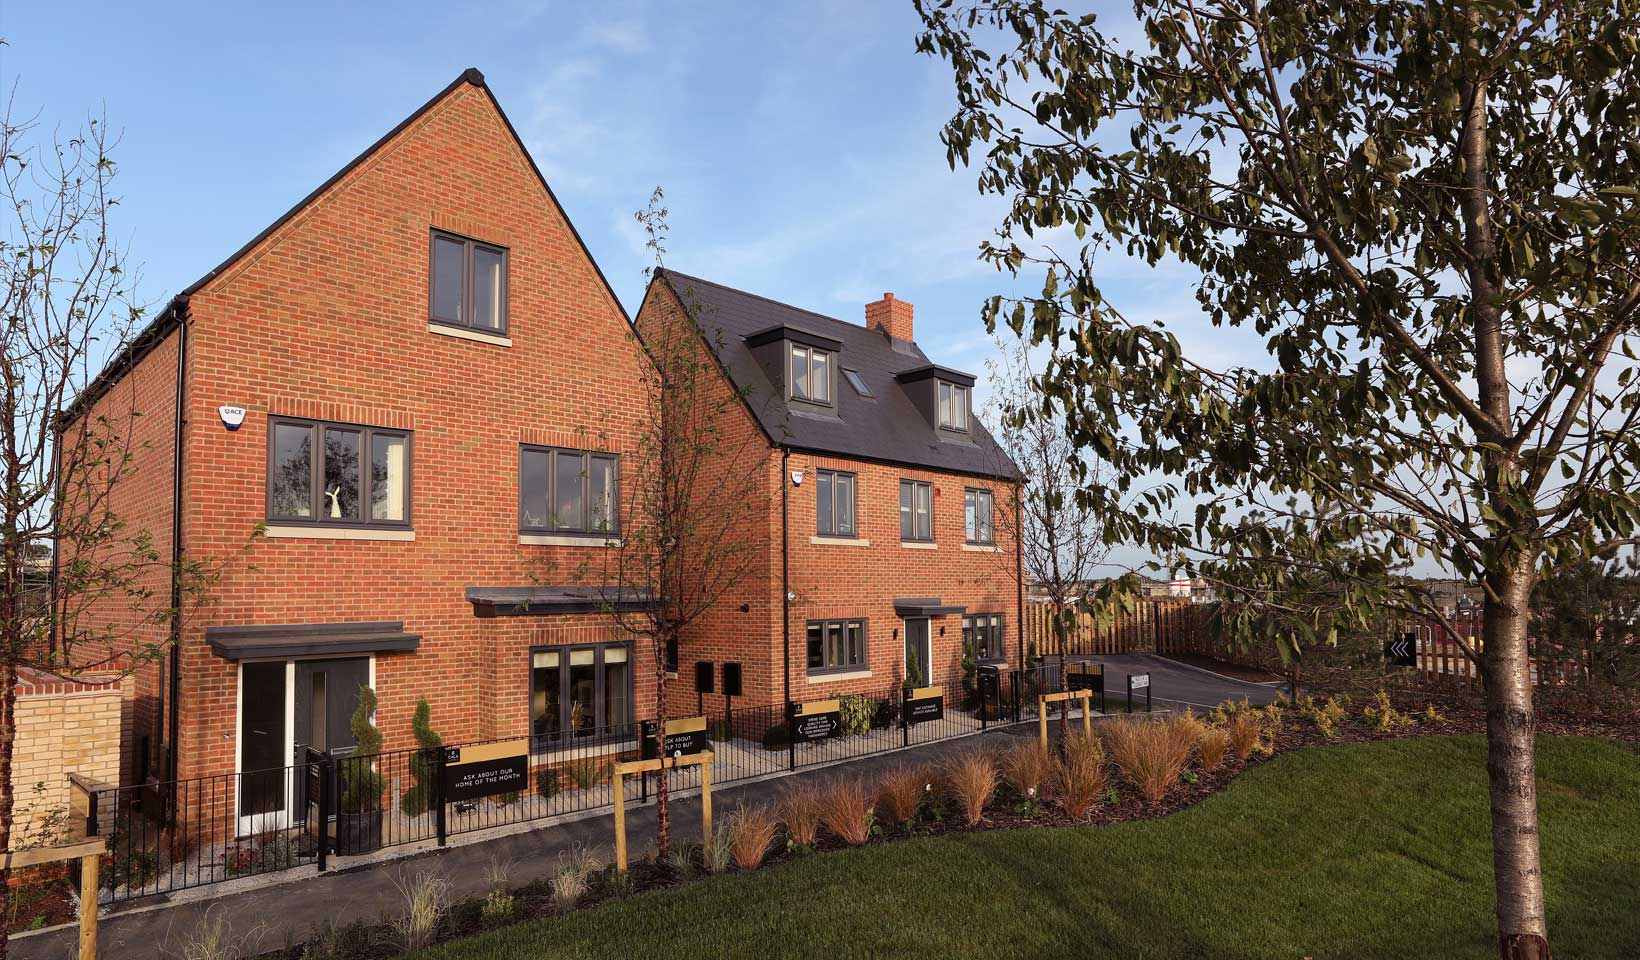 CALA homes at Wintringham